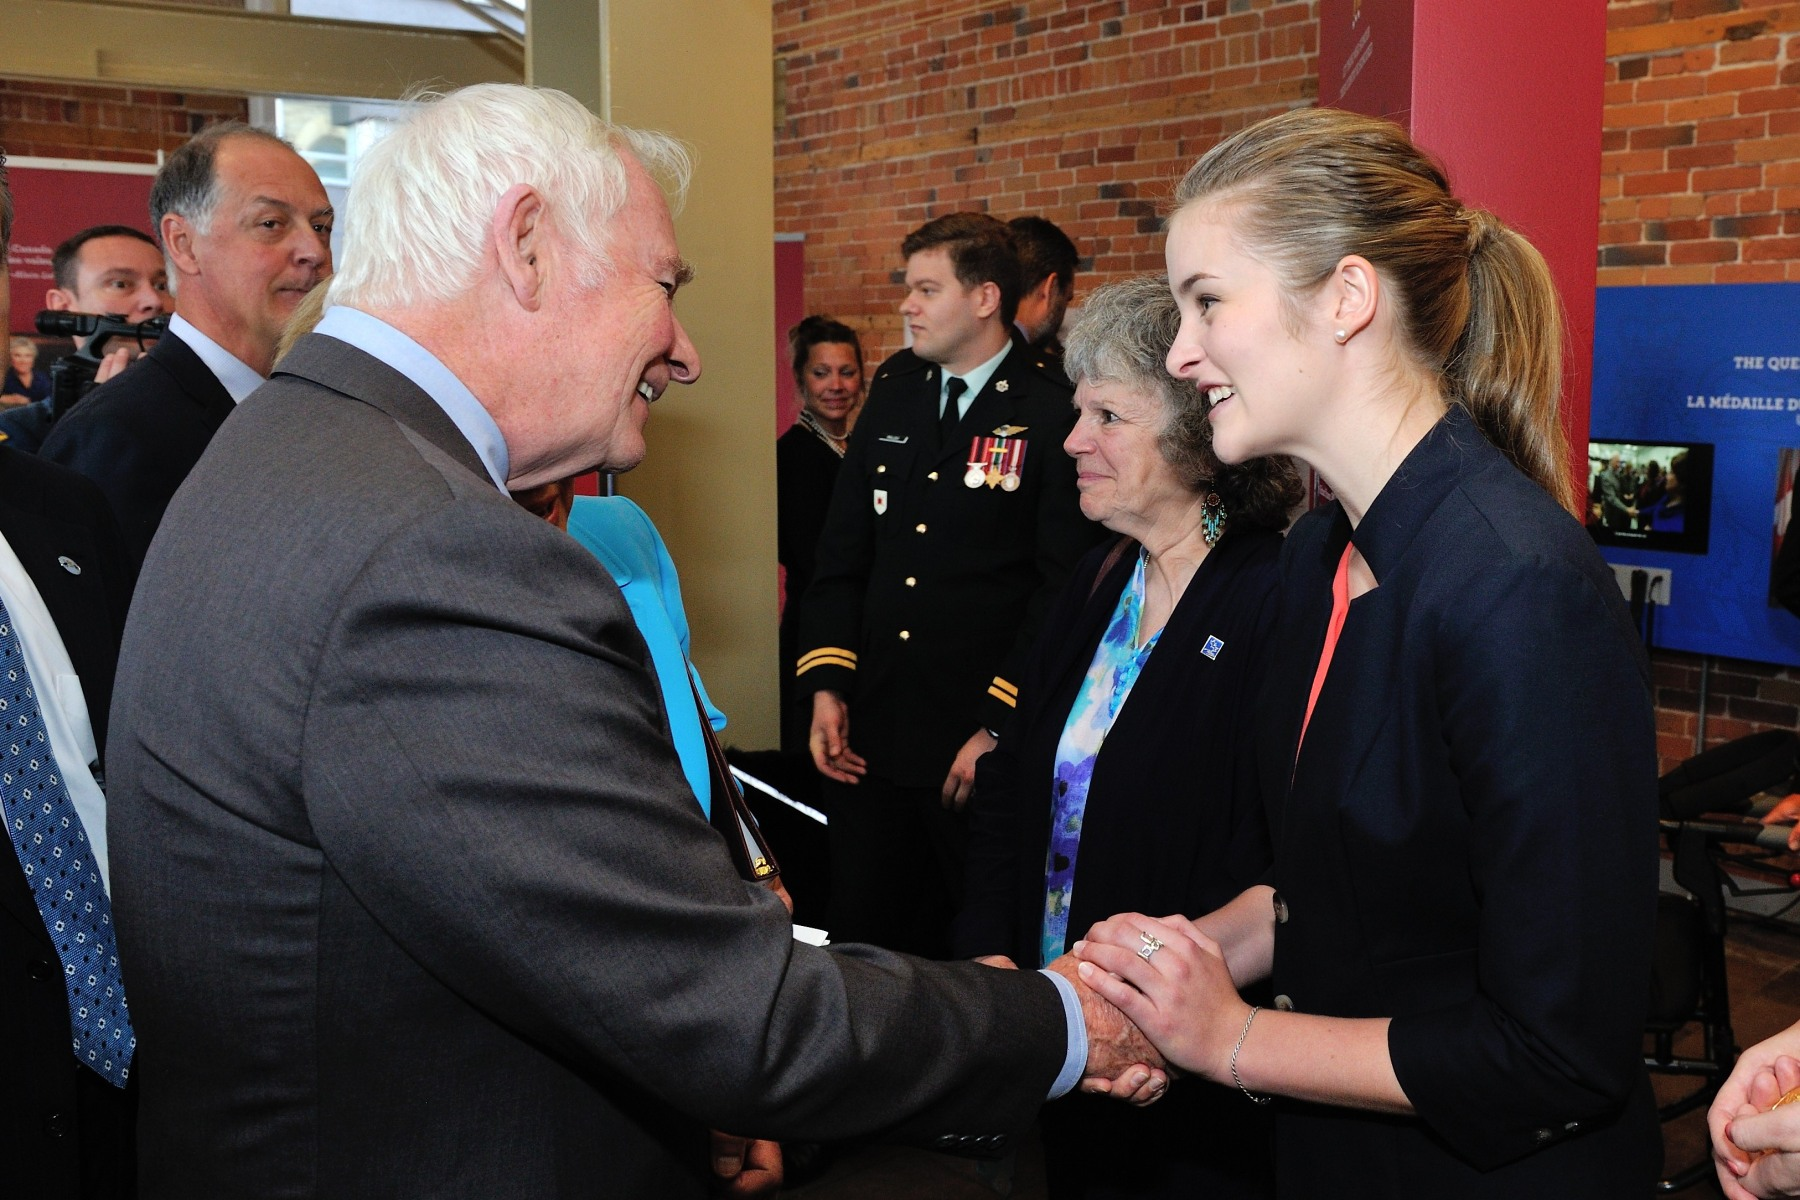 His Excellency also met with Emma Dubé. Recipient of the 2011 Governor General's Academic Medal (Bronze) at Highland Secondary School in Comox, British Columbia, 